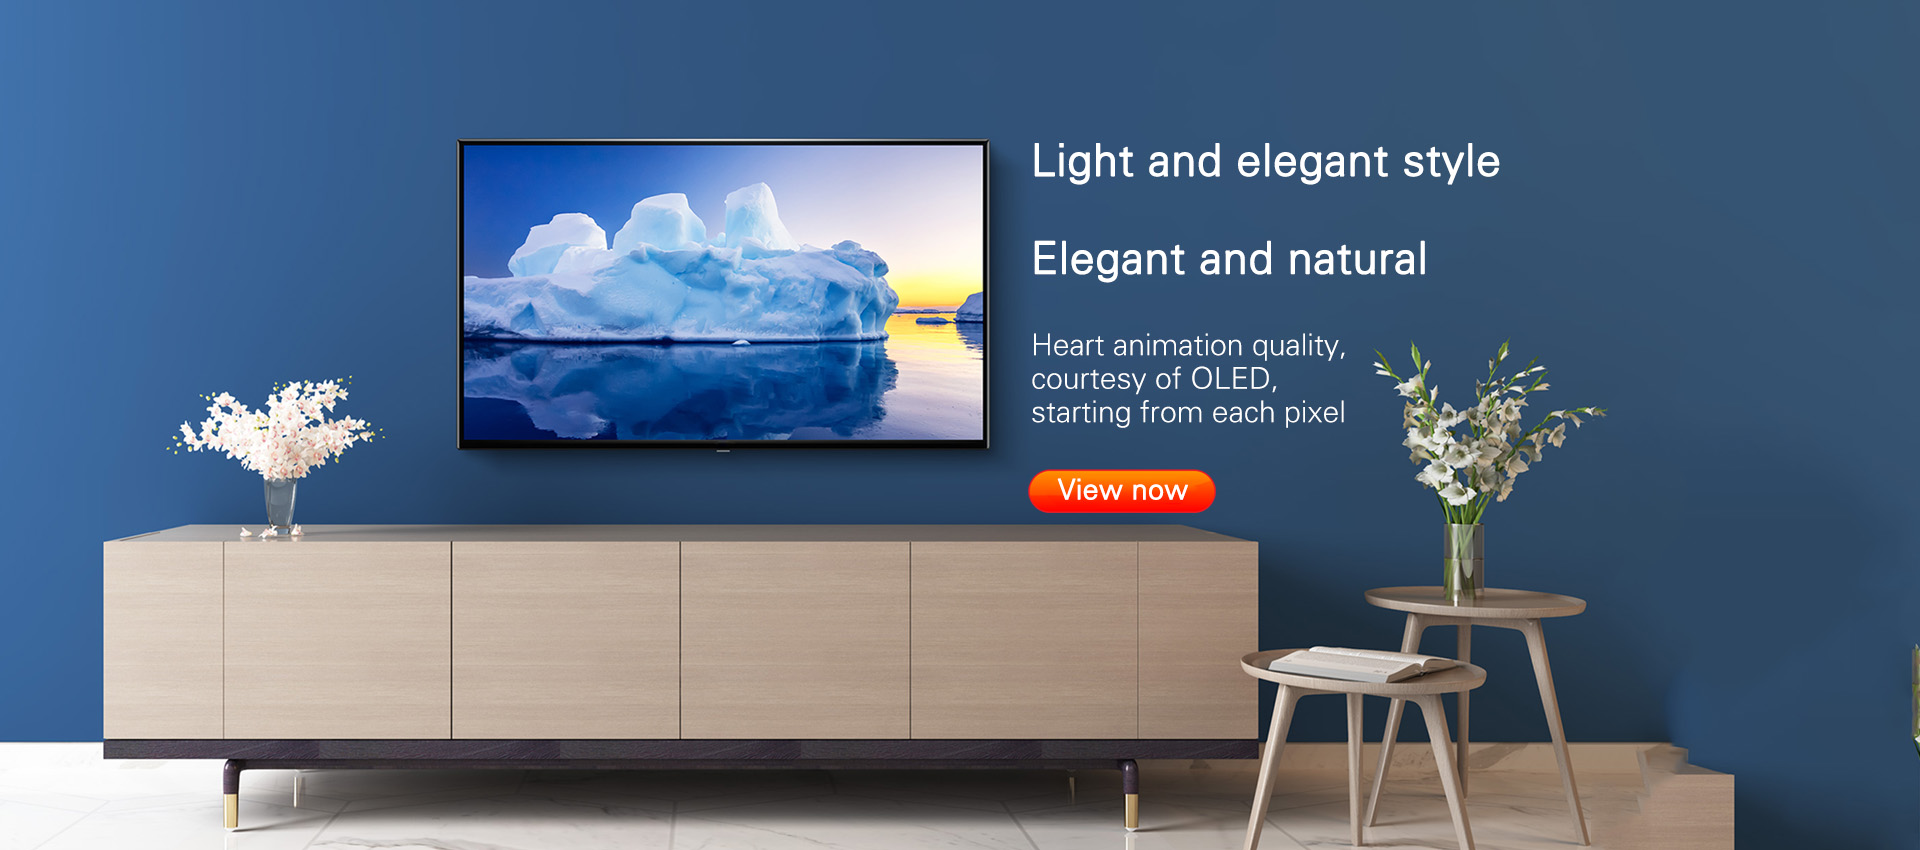 Kaidi Smart TV / LED TV / Digital TV / HD 4K TV